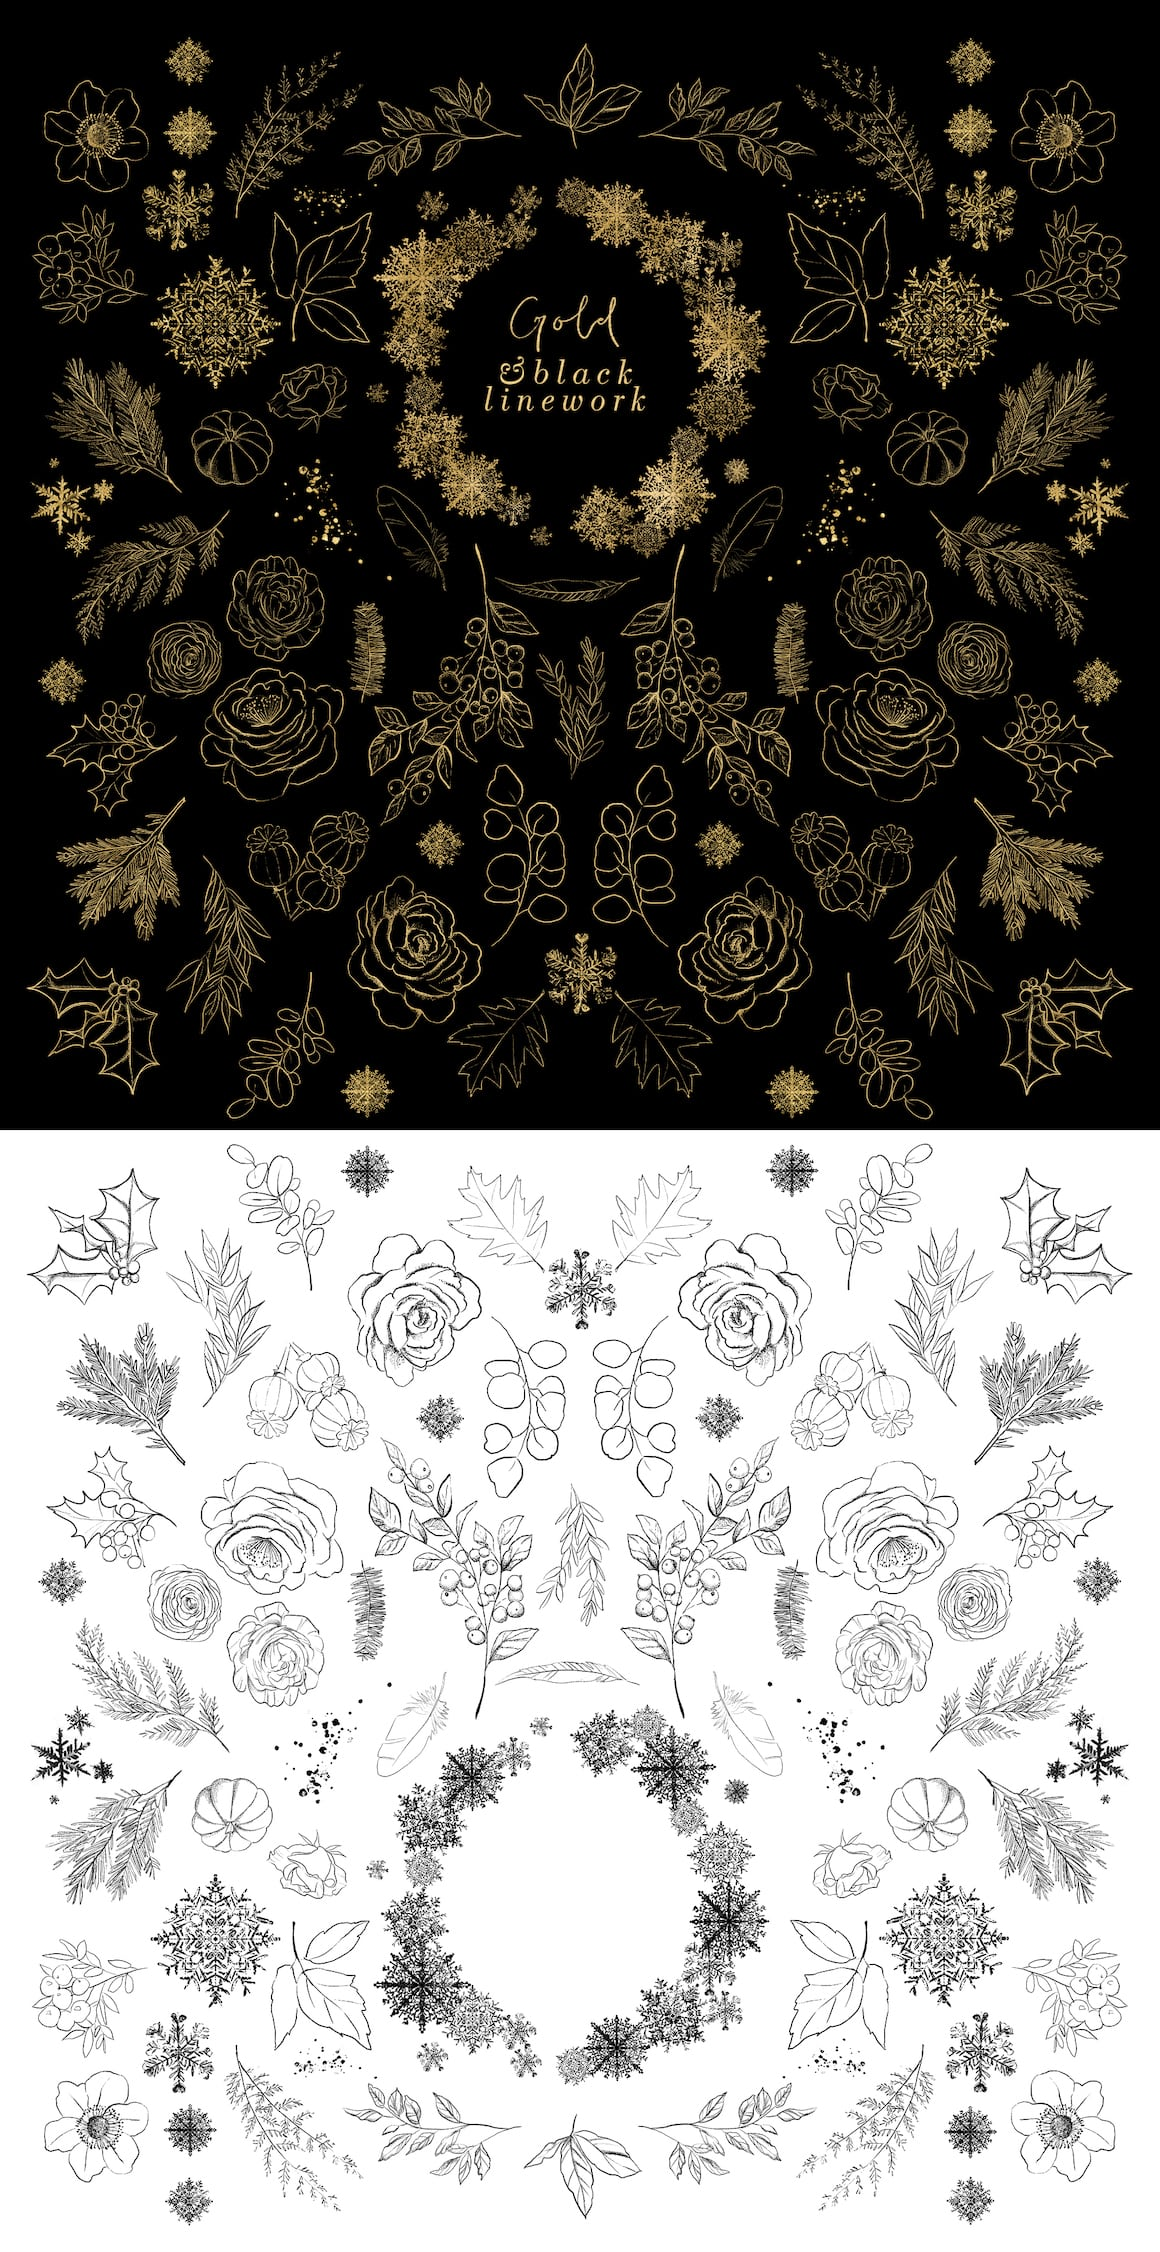 Christmas Design Bundle - Line Art Elements